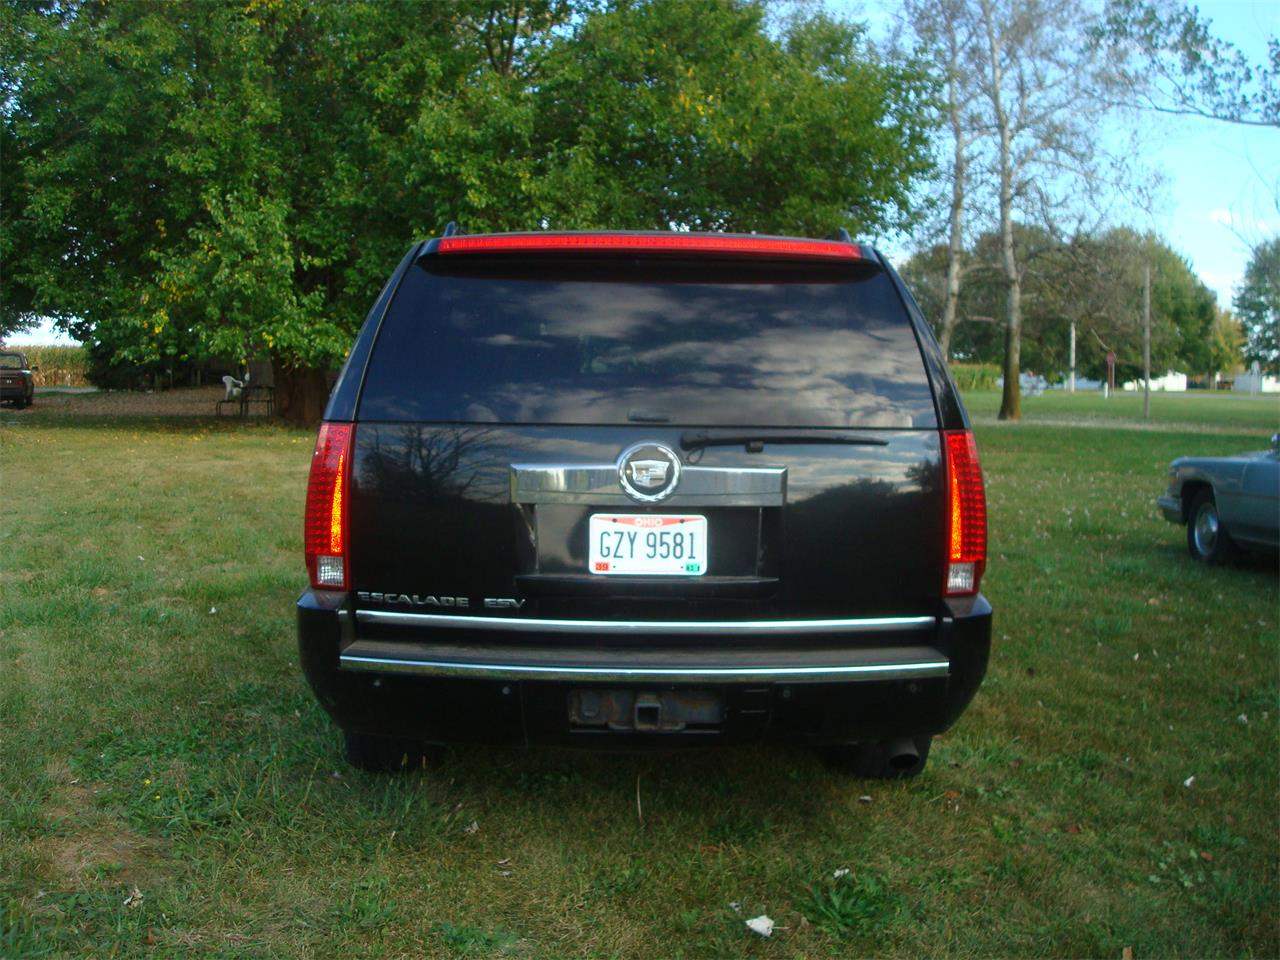 For Sale: 2008 Cadillac Escalade in New London, Ohio